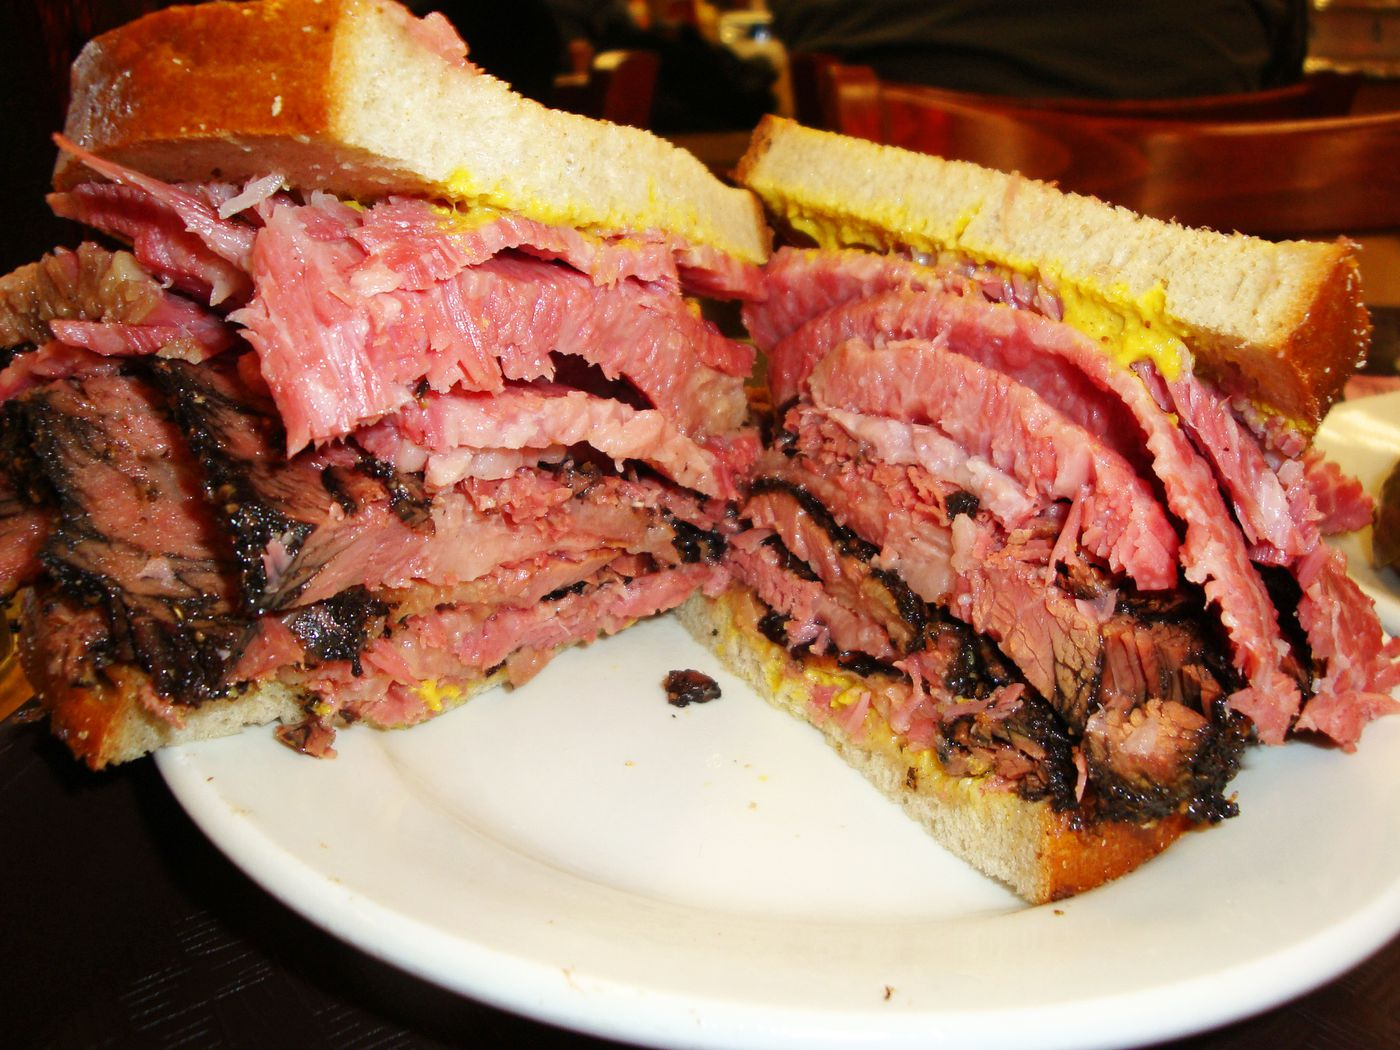 Katz's Deli Is Still One of NYC's Best Restaurants, If You Order Right - Eater NY's Deli Is Still One of NYC's Best Restaurants, If You Order Right - Eater NY